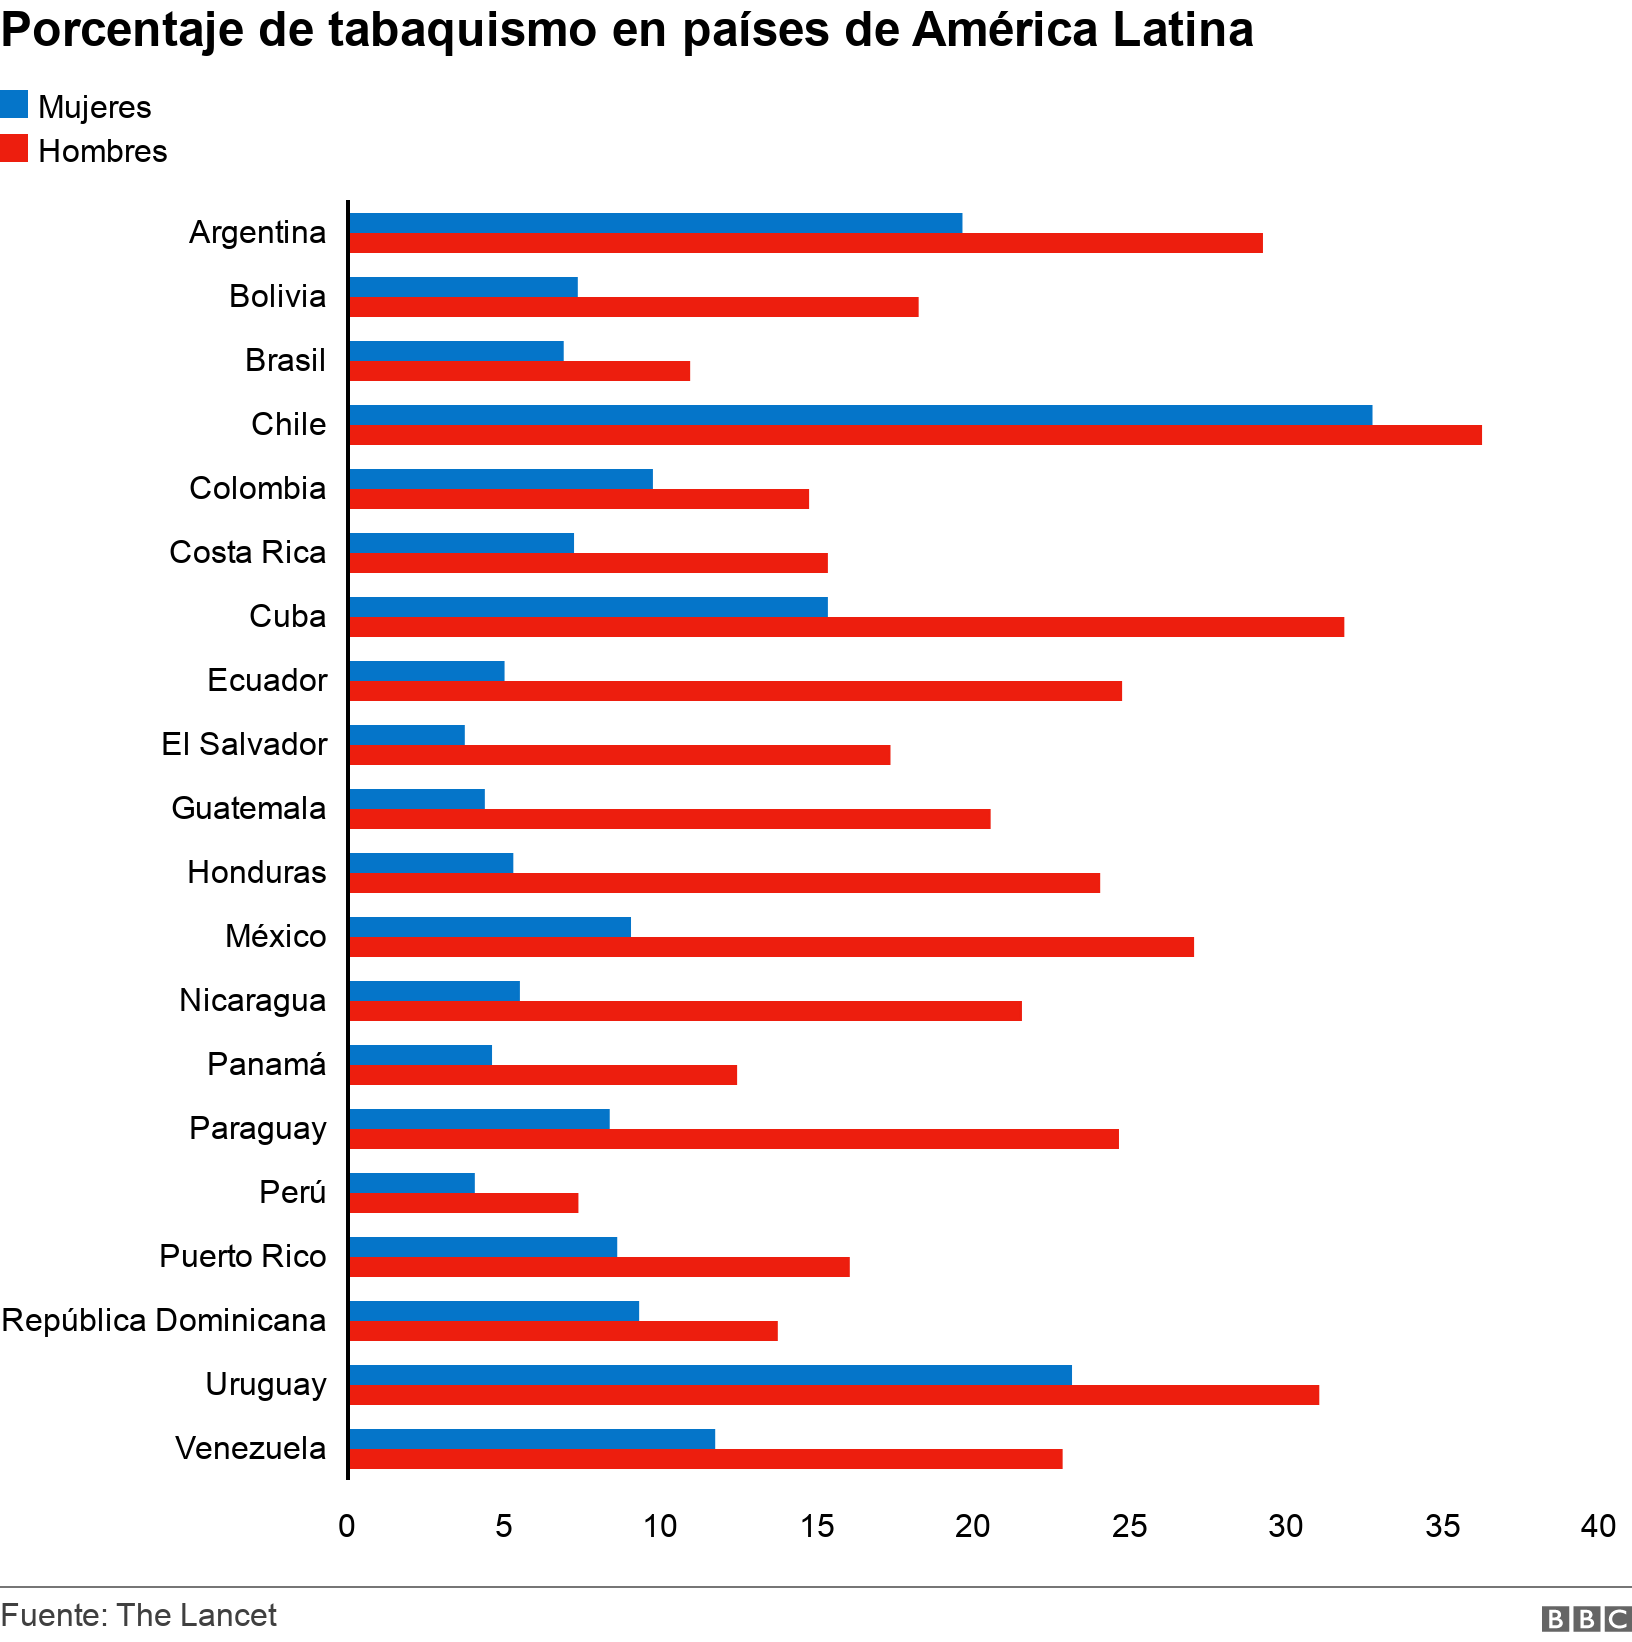 Percentage of smoking in Latin American countries.  .  .